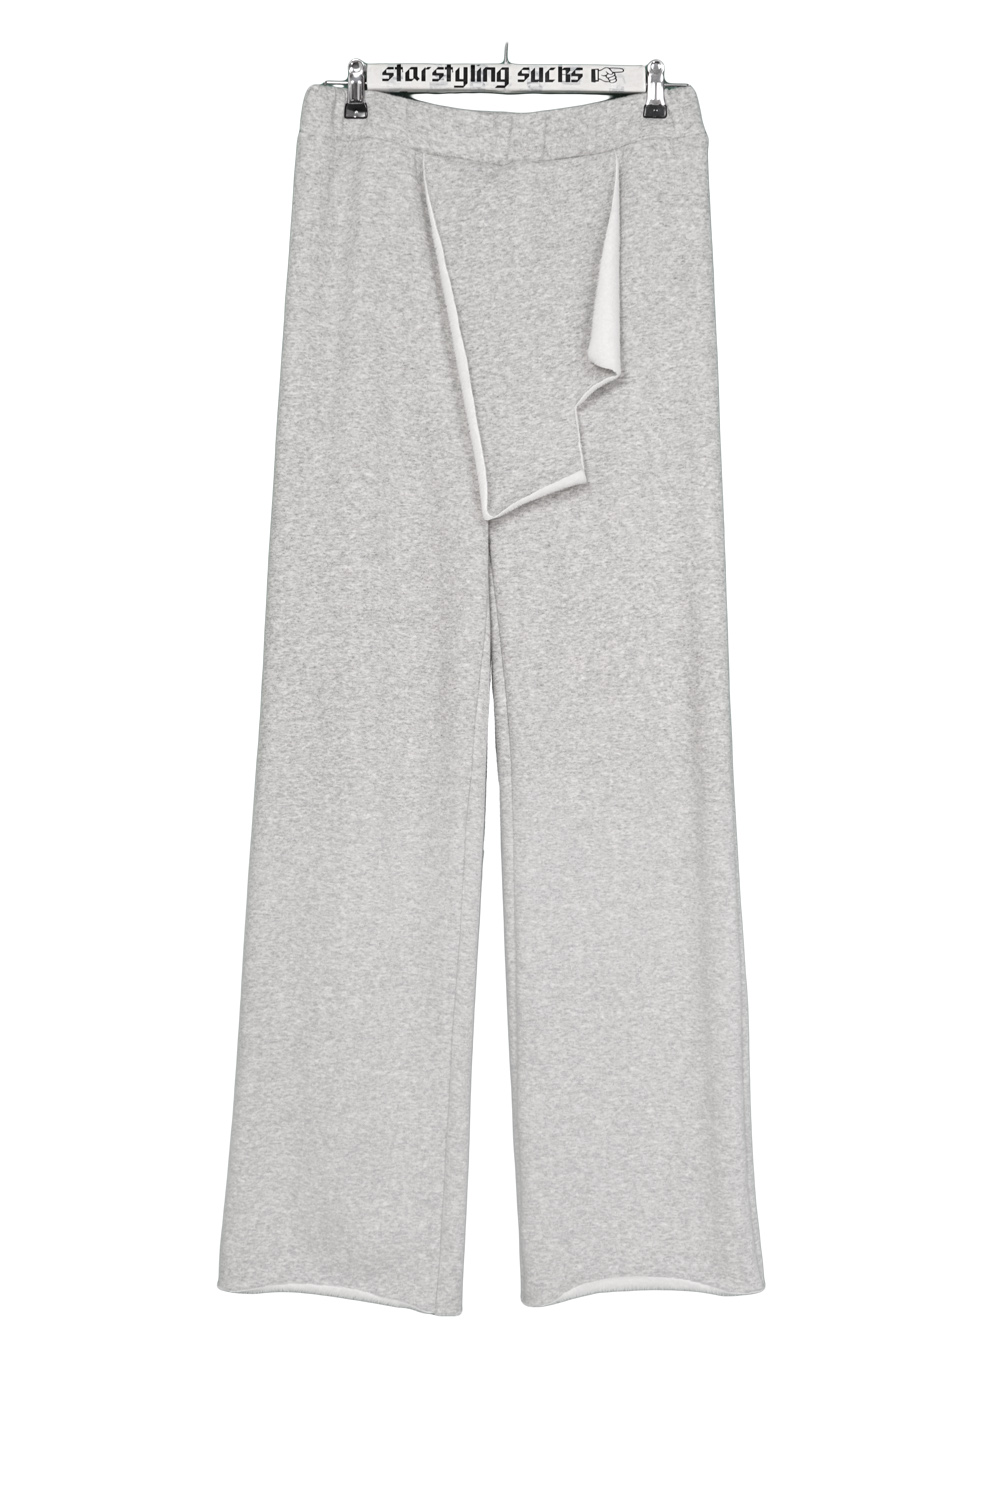 Cloth Trousers - 6